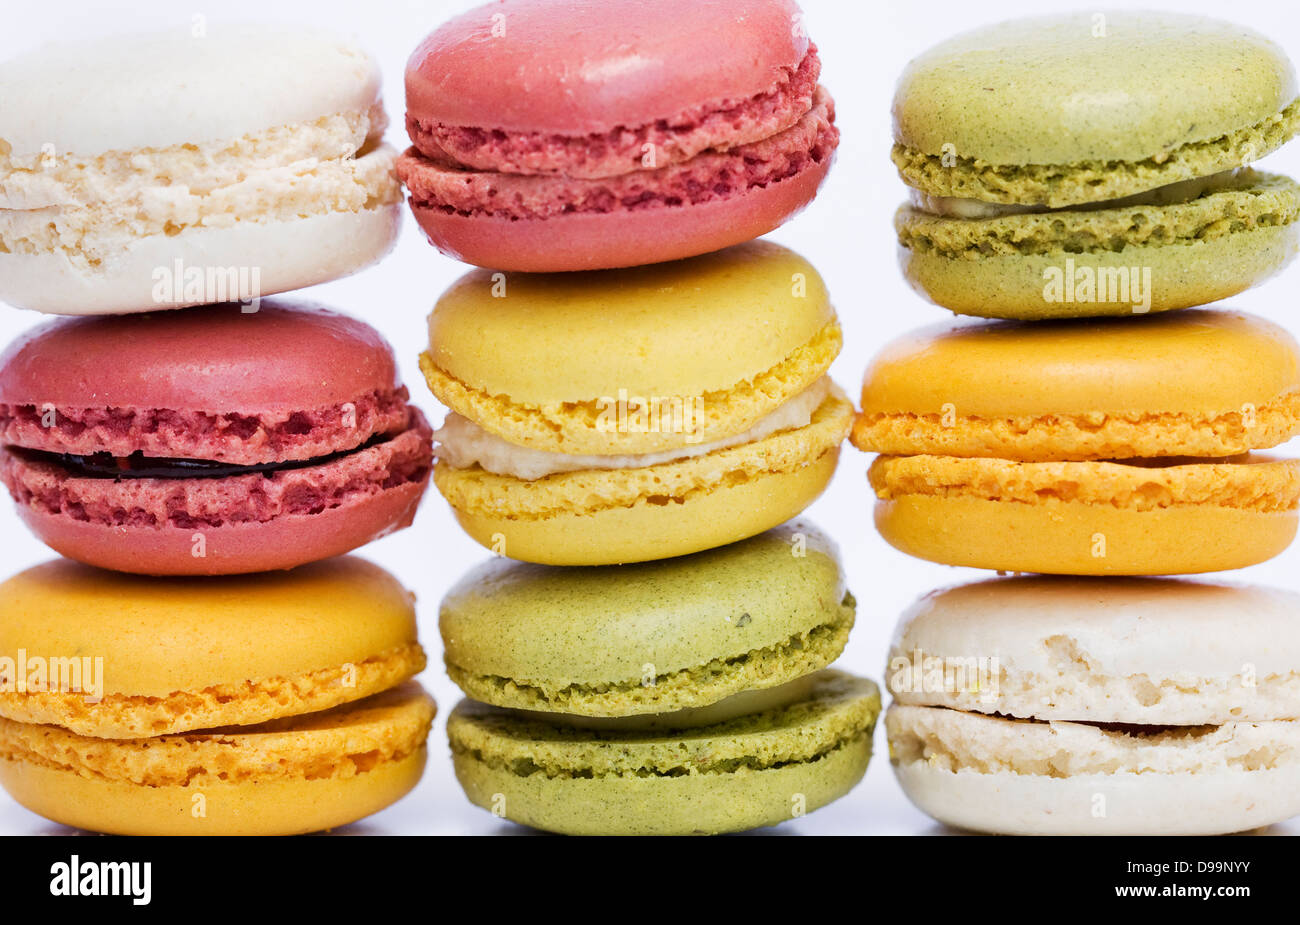 Colourful stacked macaroons. - Stock Image